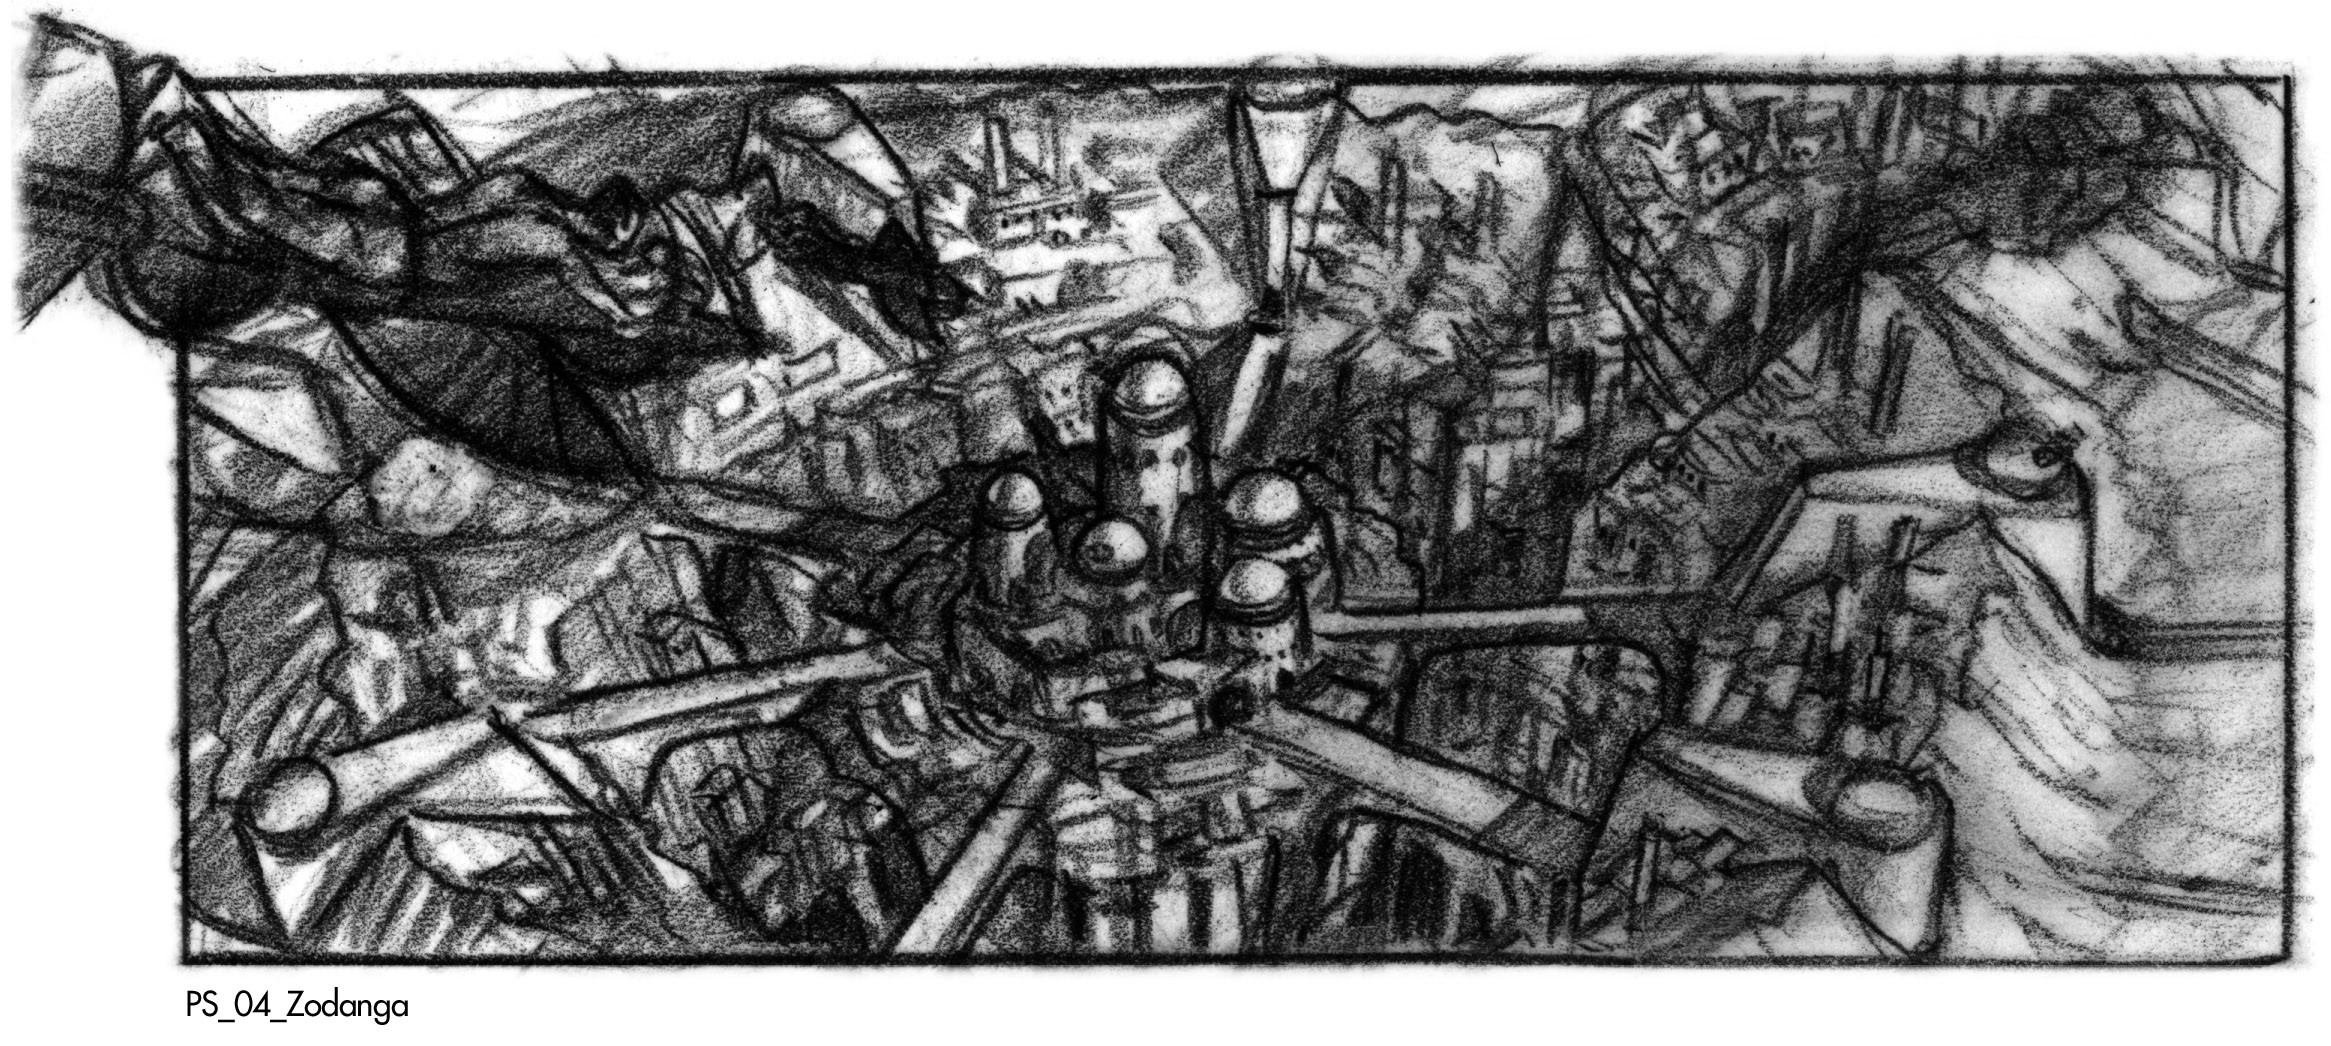 Another thumbnail, this one introducing the idea of the secondary crater, which makes for a more interesting city footprint.